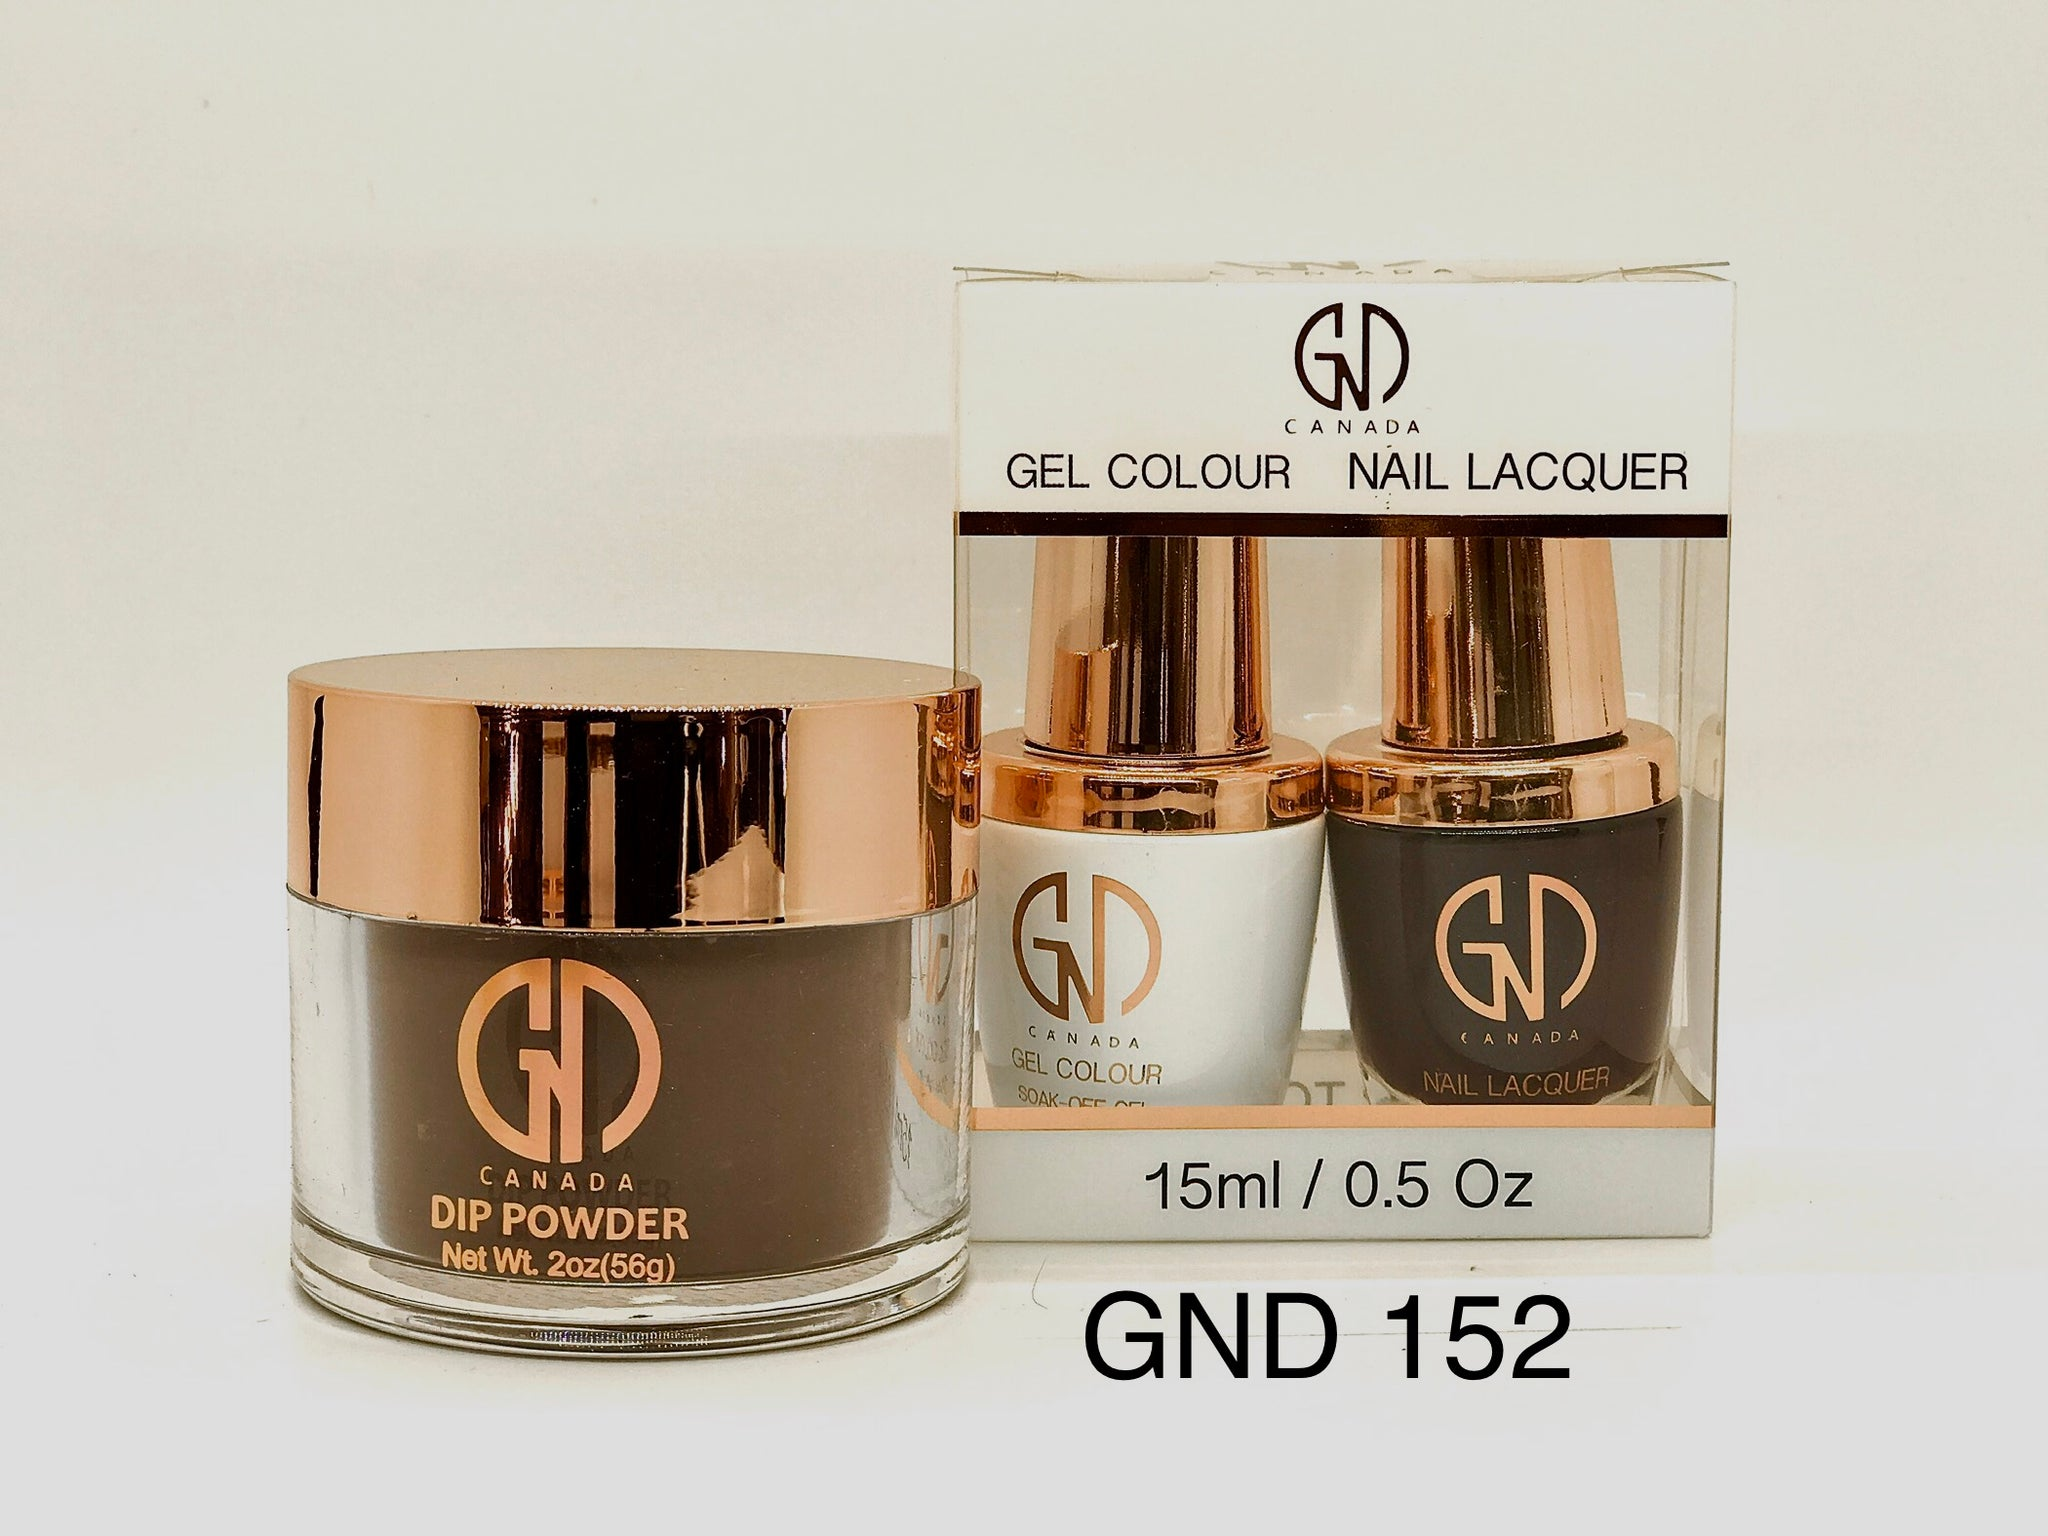 3-in-1 Nail Combo: Dip, Gel & Lacquer #152 | GND Canada® - CM Nails & Beauty Supply